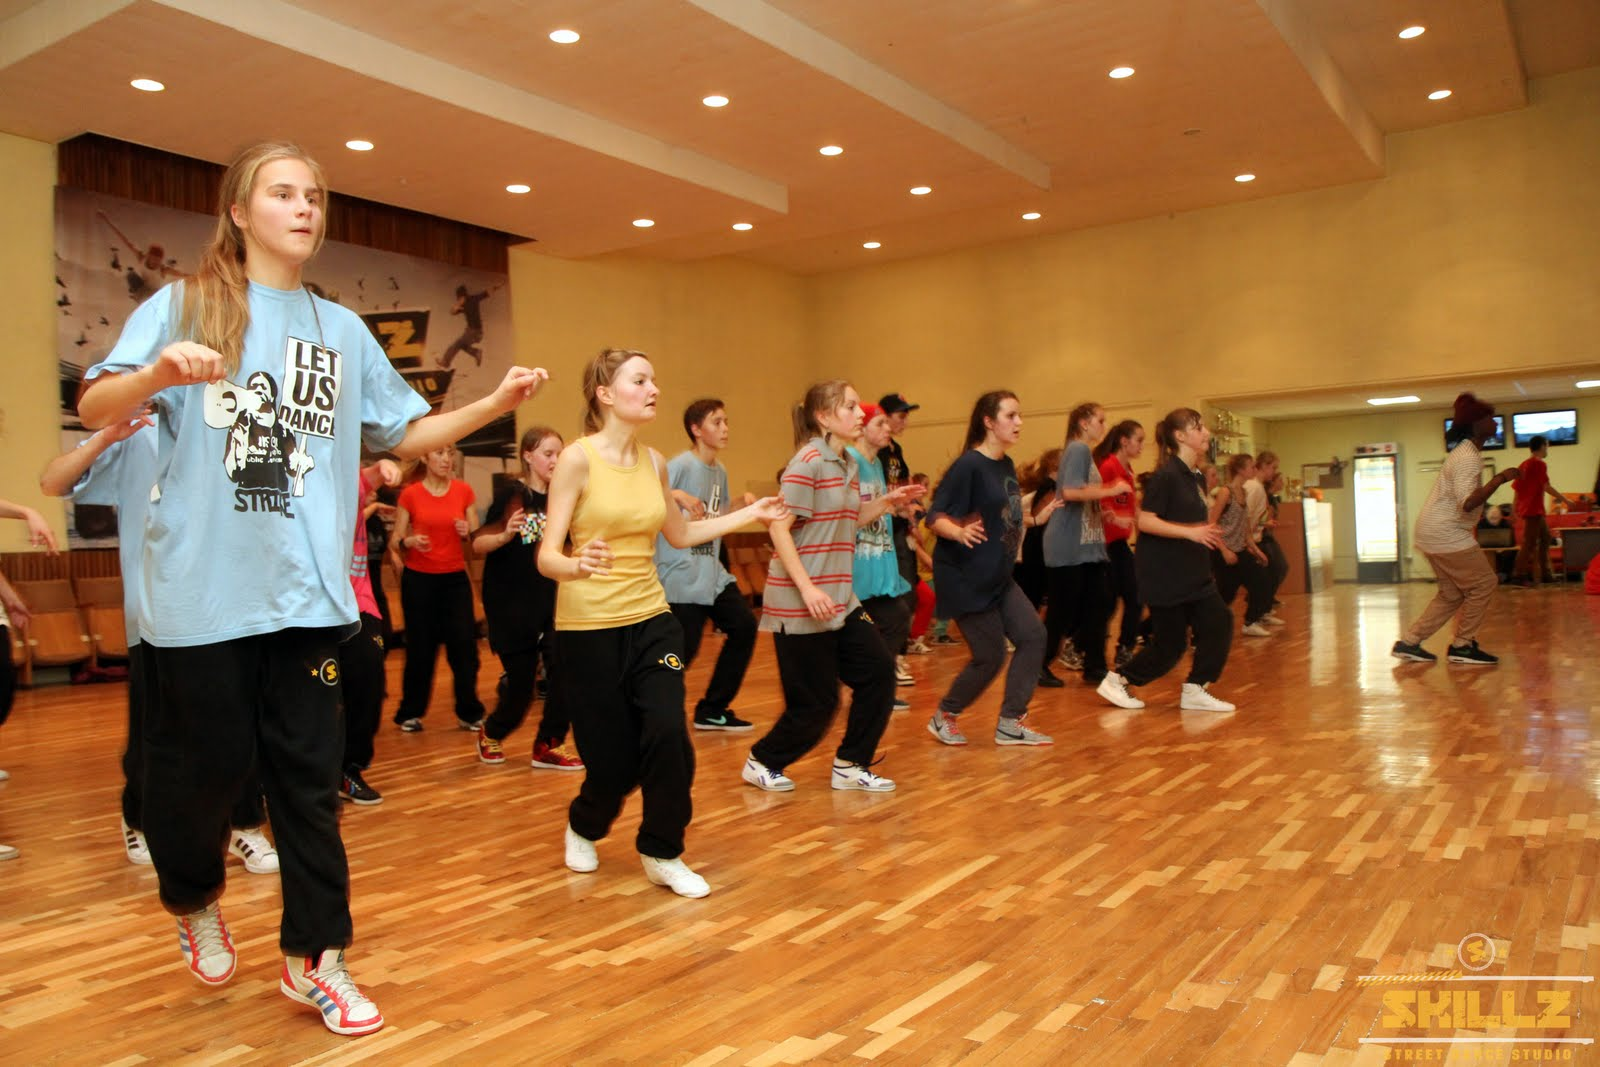 Hip- Hop workshop with Shaadow (UK) - IMG_1788.jpg